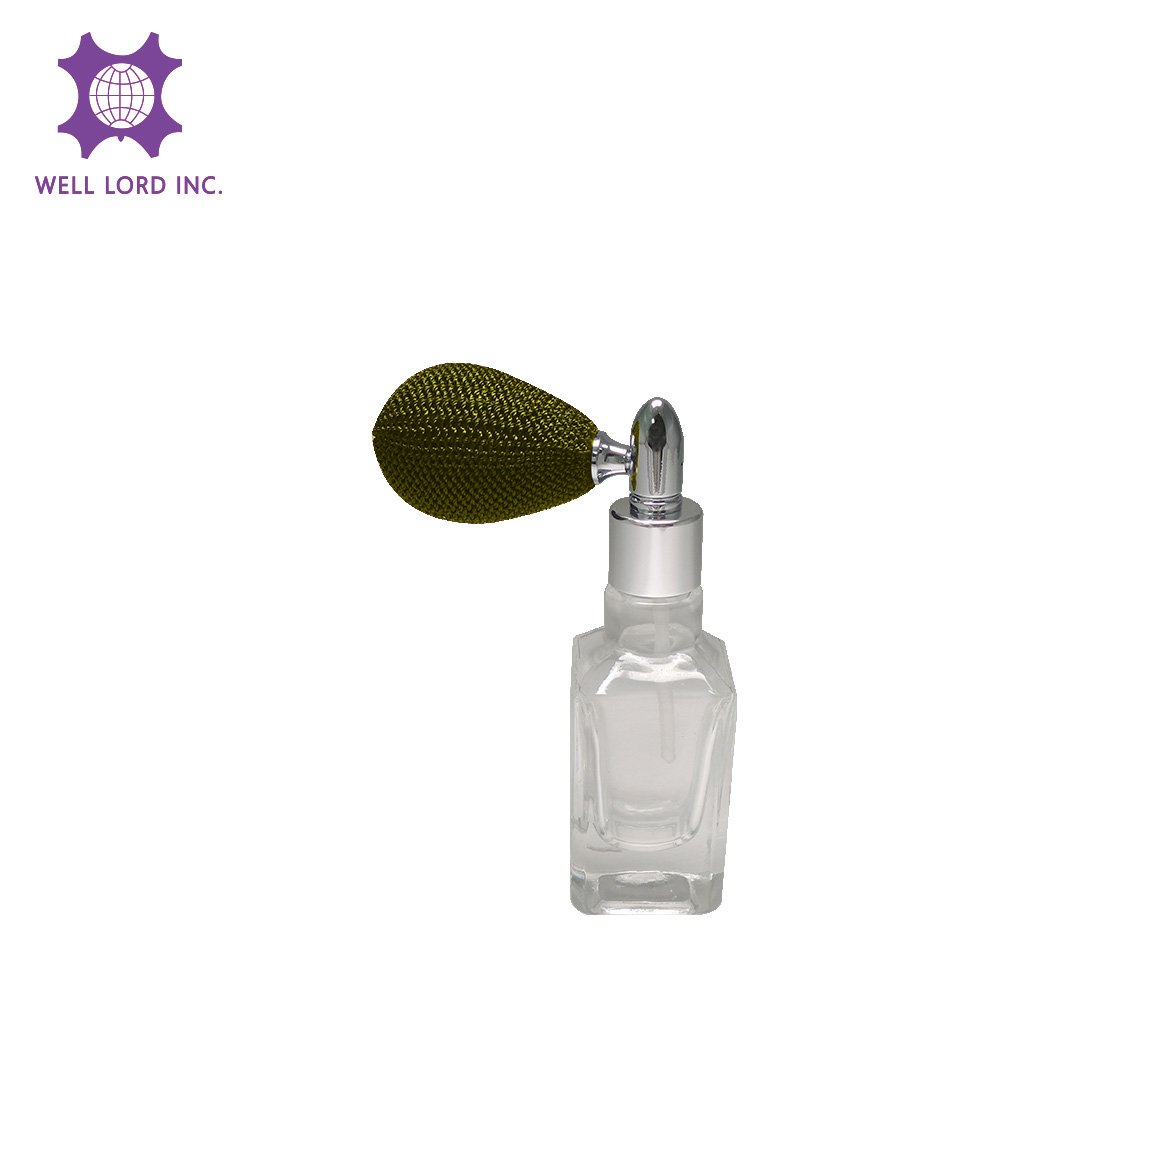 Unique design 13ml clear rectangle glass bottle with olive green bulb sprayer bottle